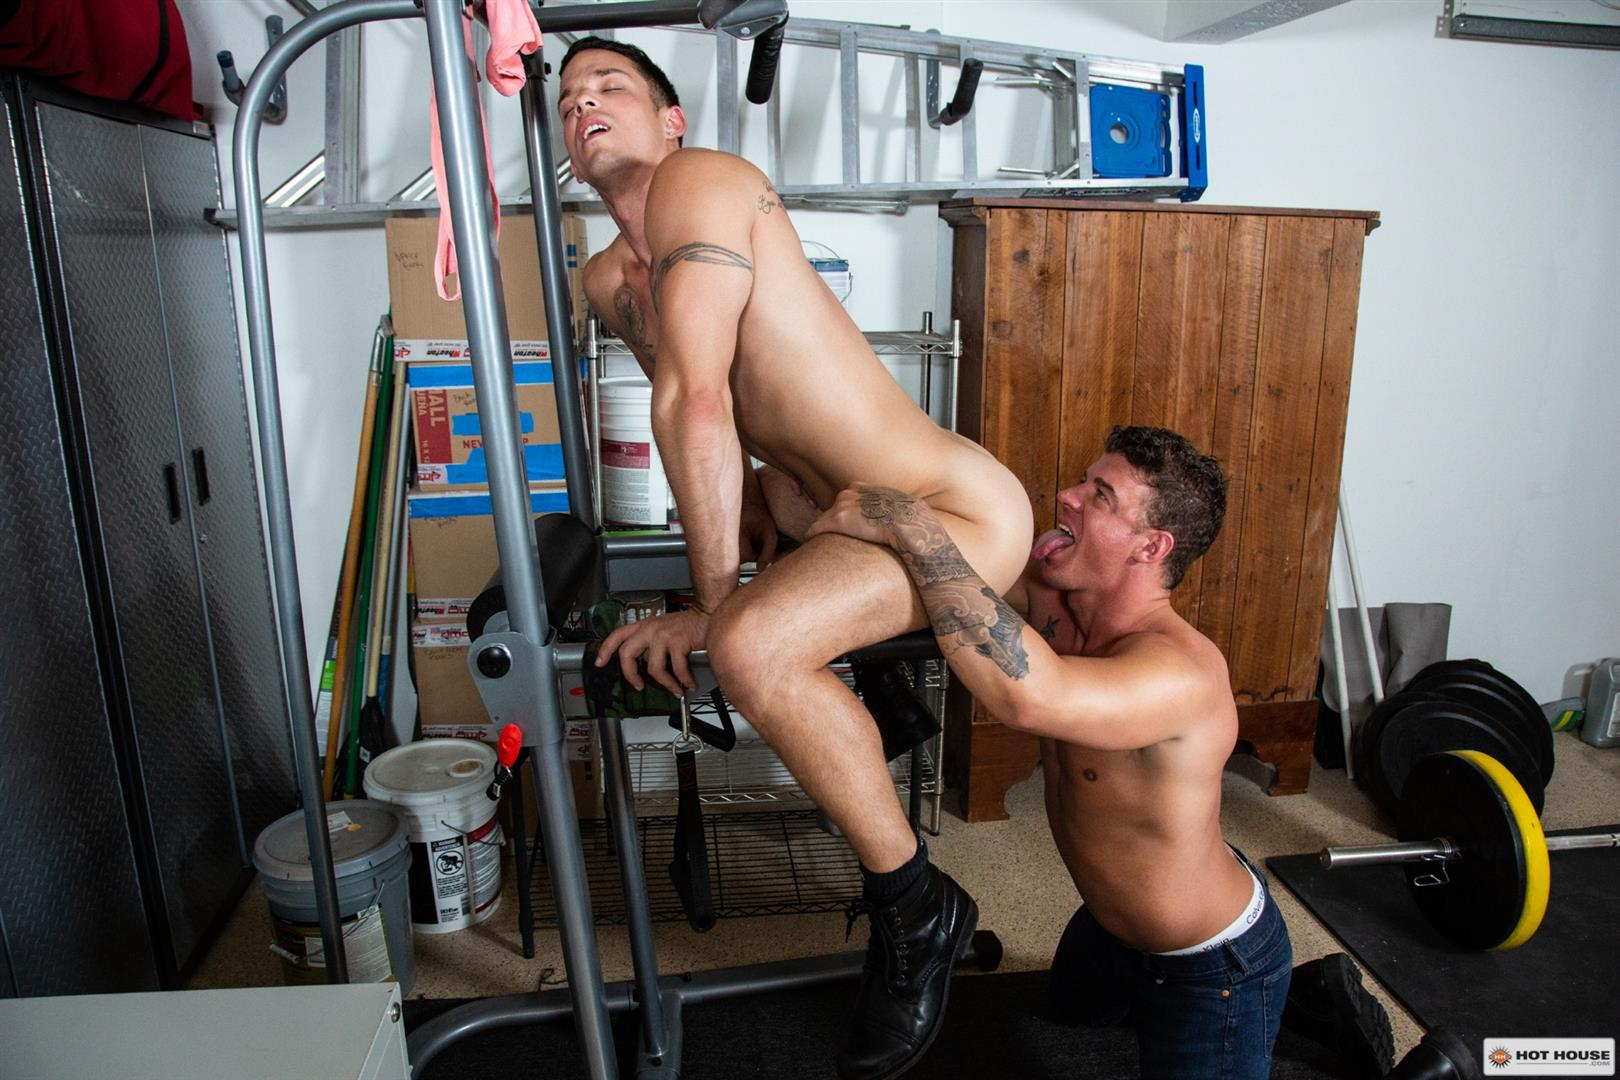 Hot-House-JJ-Knight-and-Nic-Sahara-Big-Cock-Jocks-Fucking-Bareback-08 JJ Knight Floods Nic Sahara's Ass With Cum